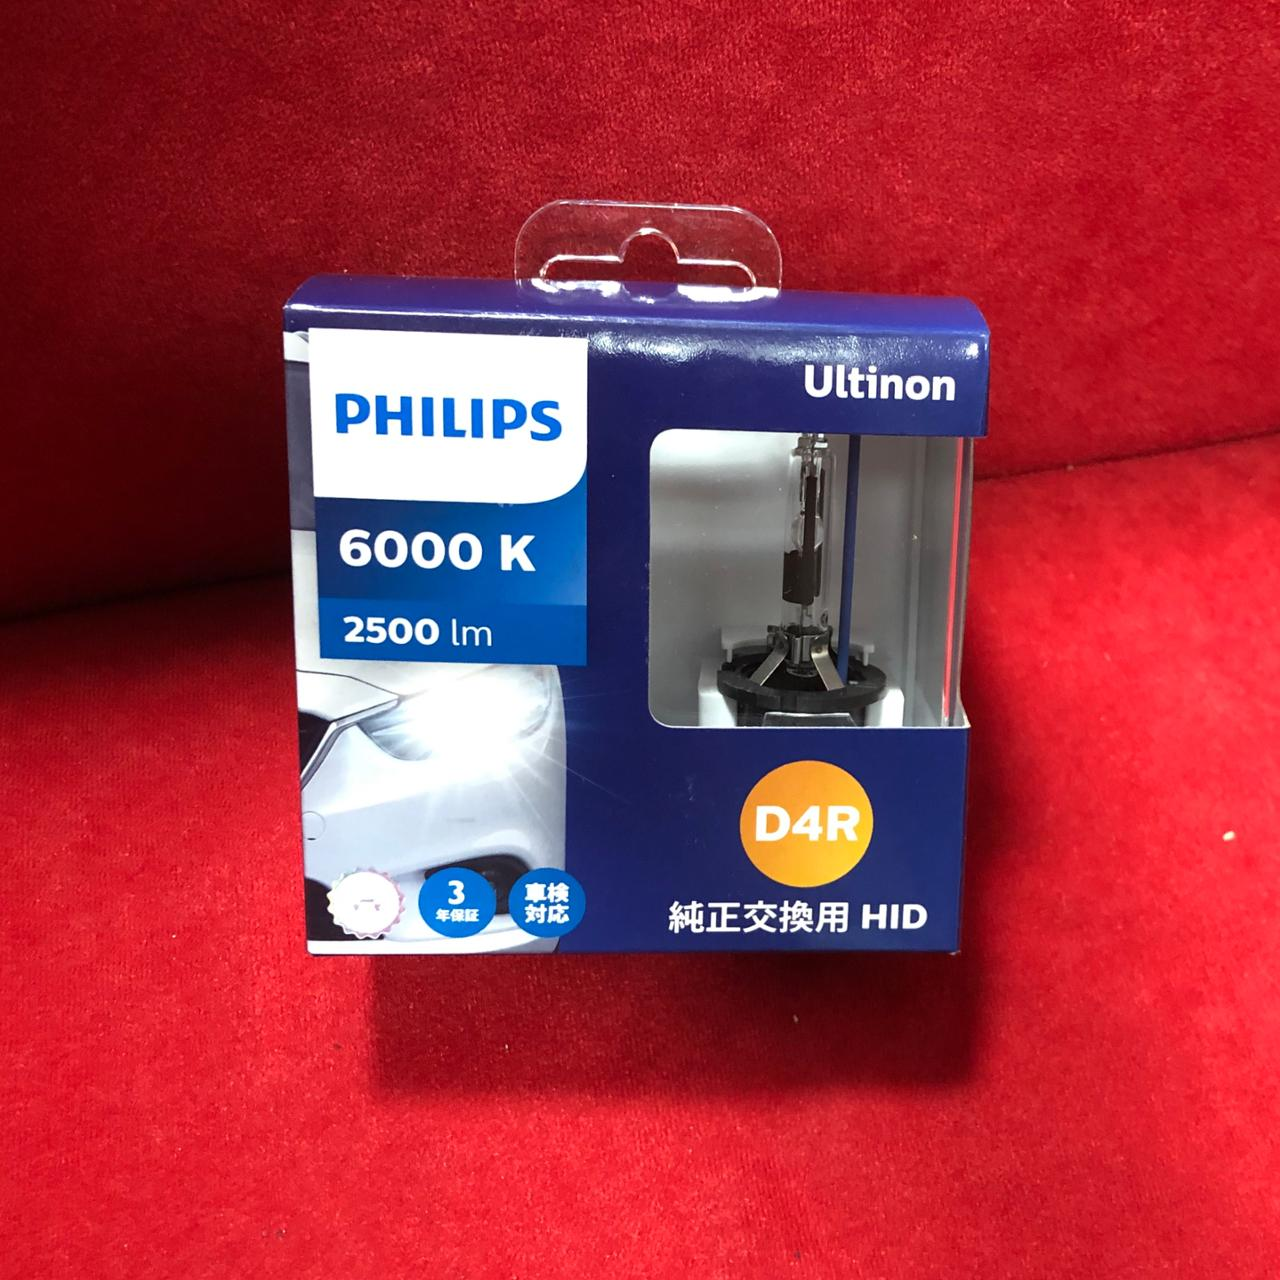 PHILIPS Ultinon 6000K D4R 2500lm